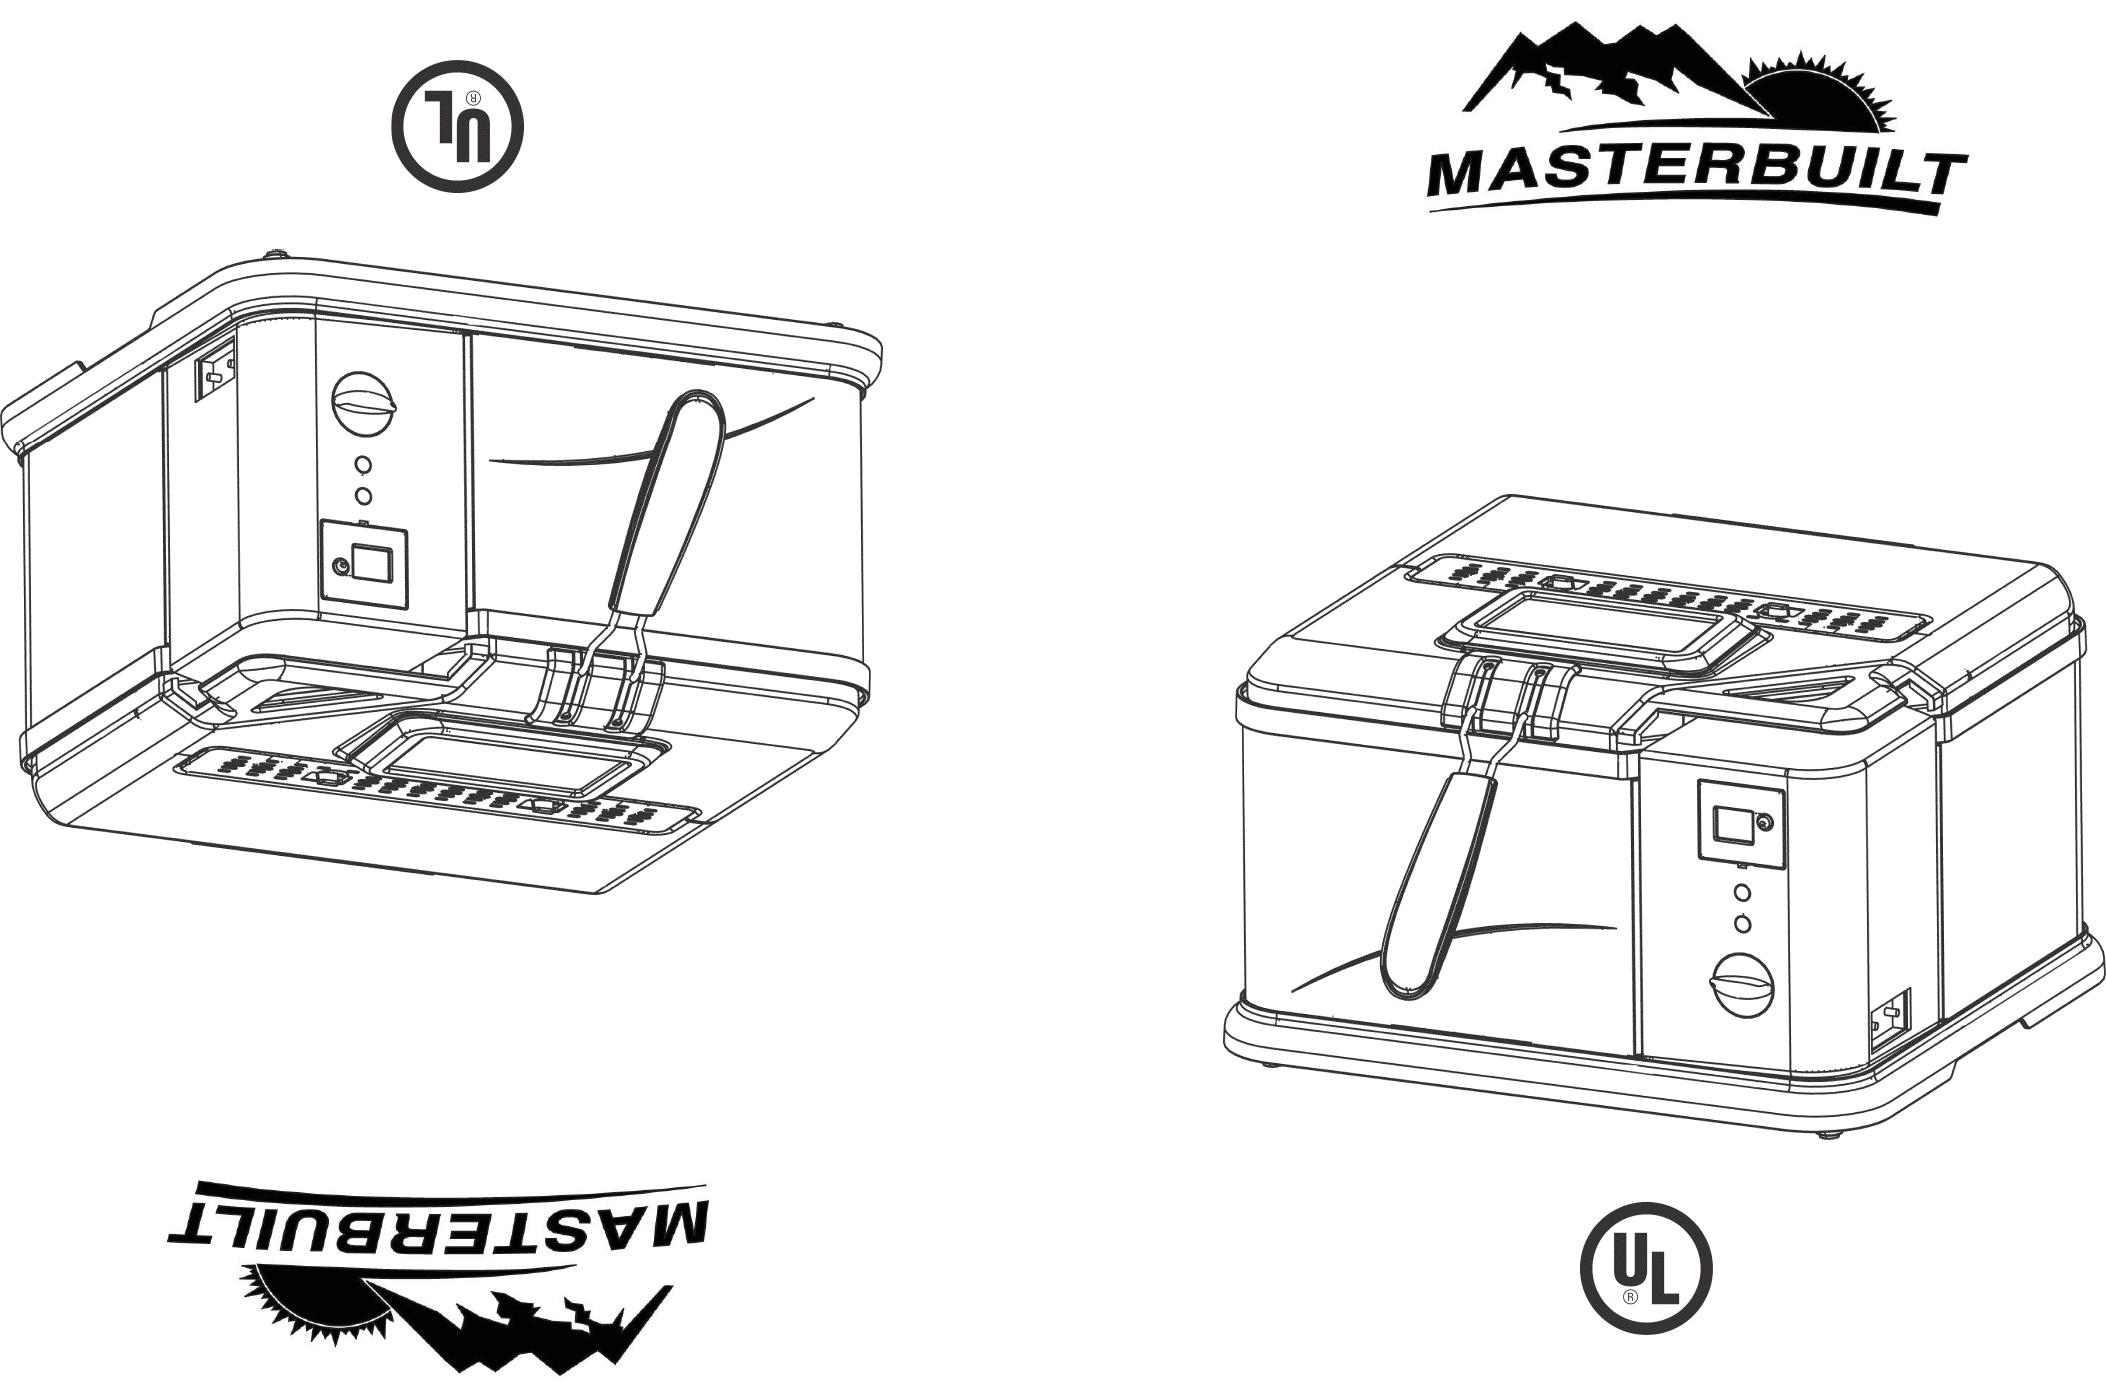 masterbuilt fryer 20010610 user guide